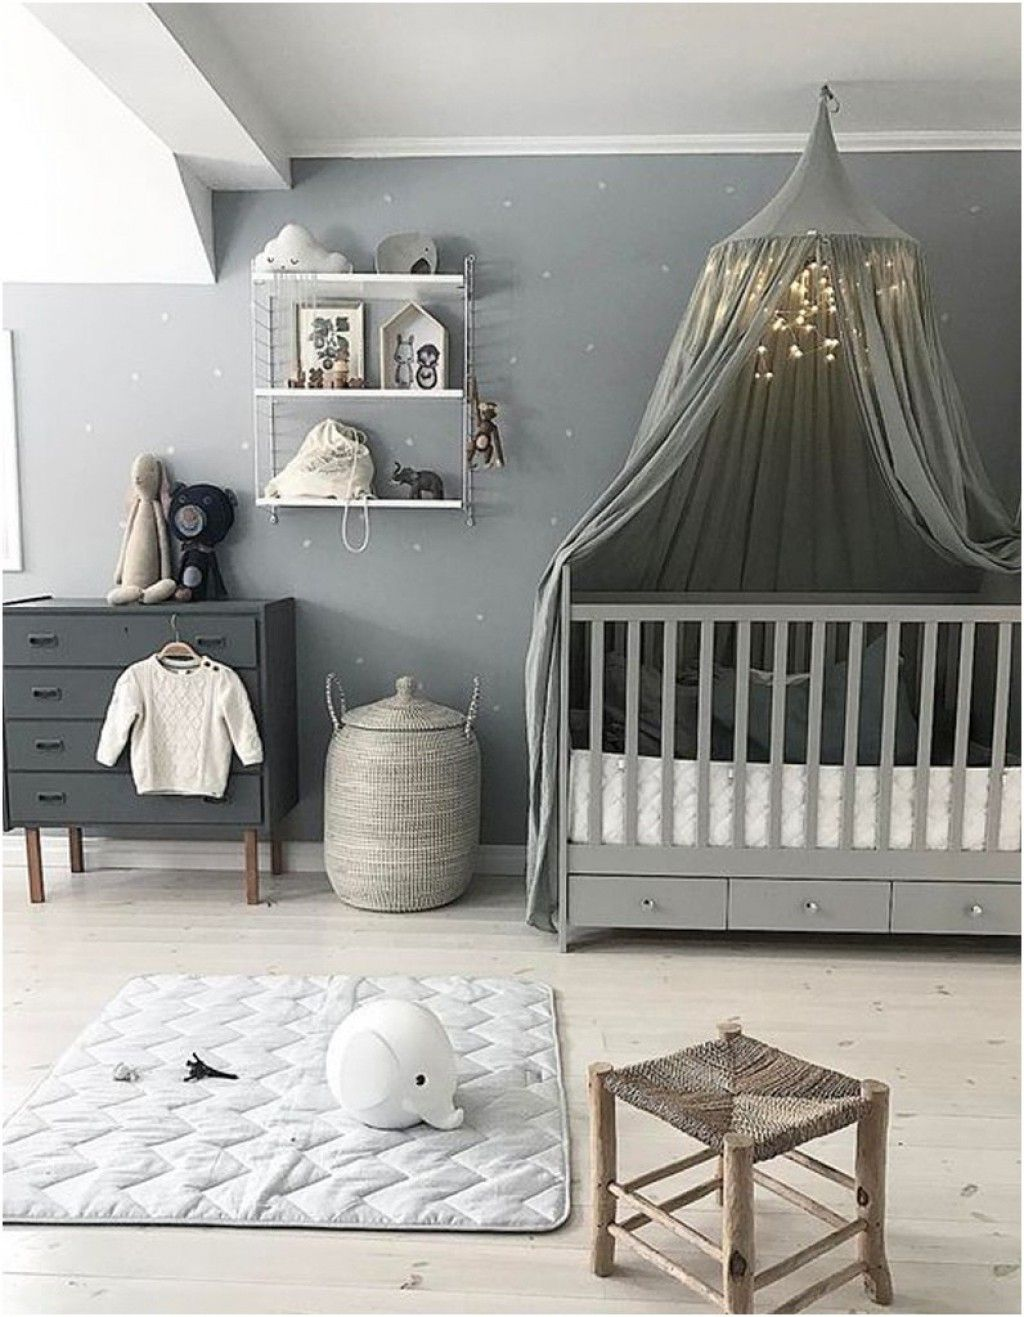 Decoration Murale Bebe Fille Génial Chambre Bebe Fille Idee Deco Ideal Homes In 2019 Baby